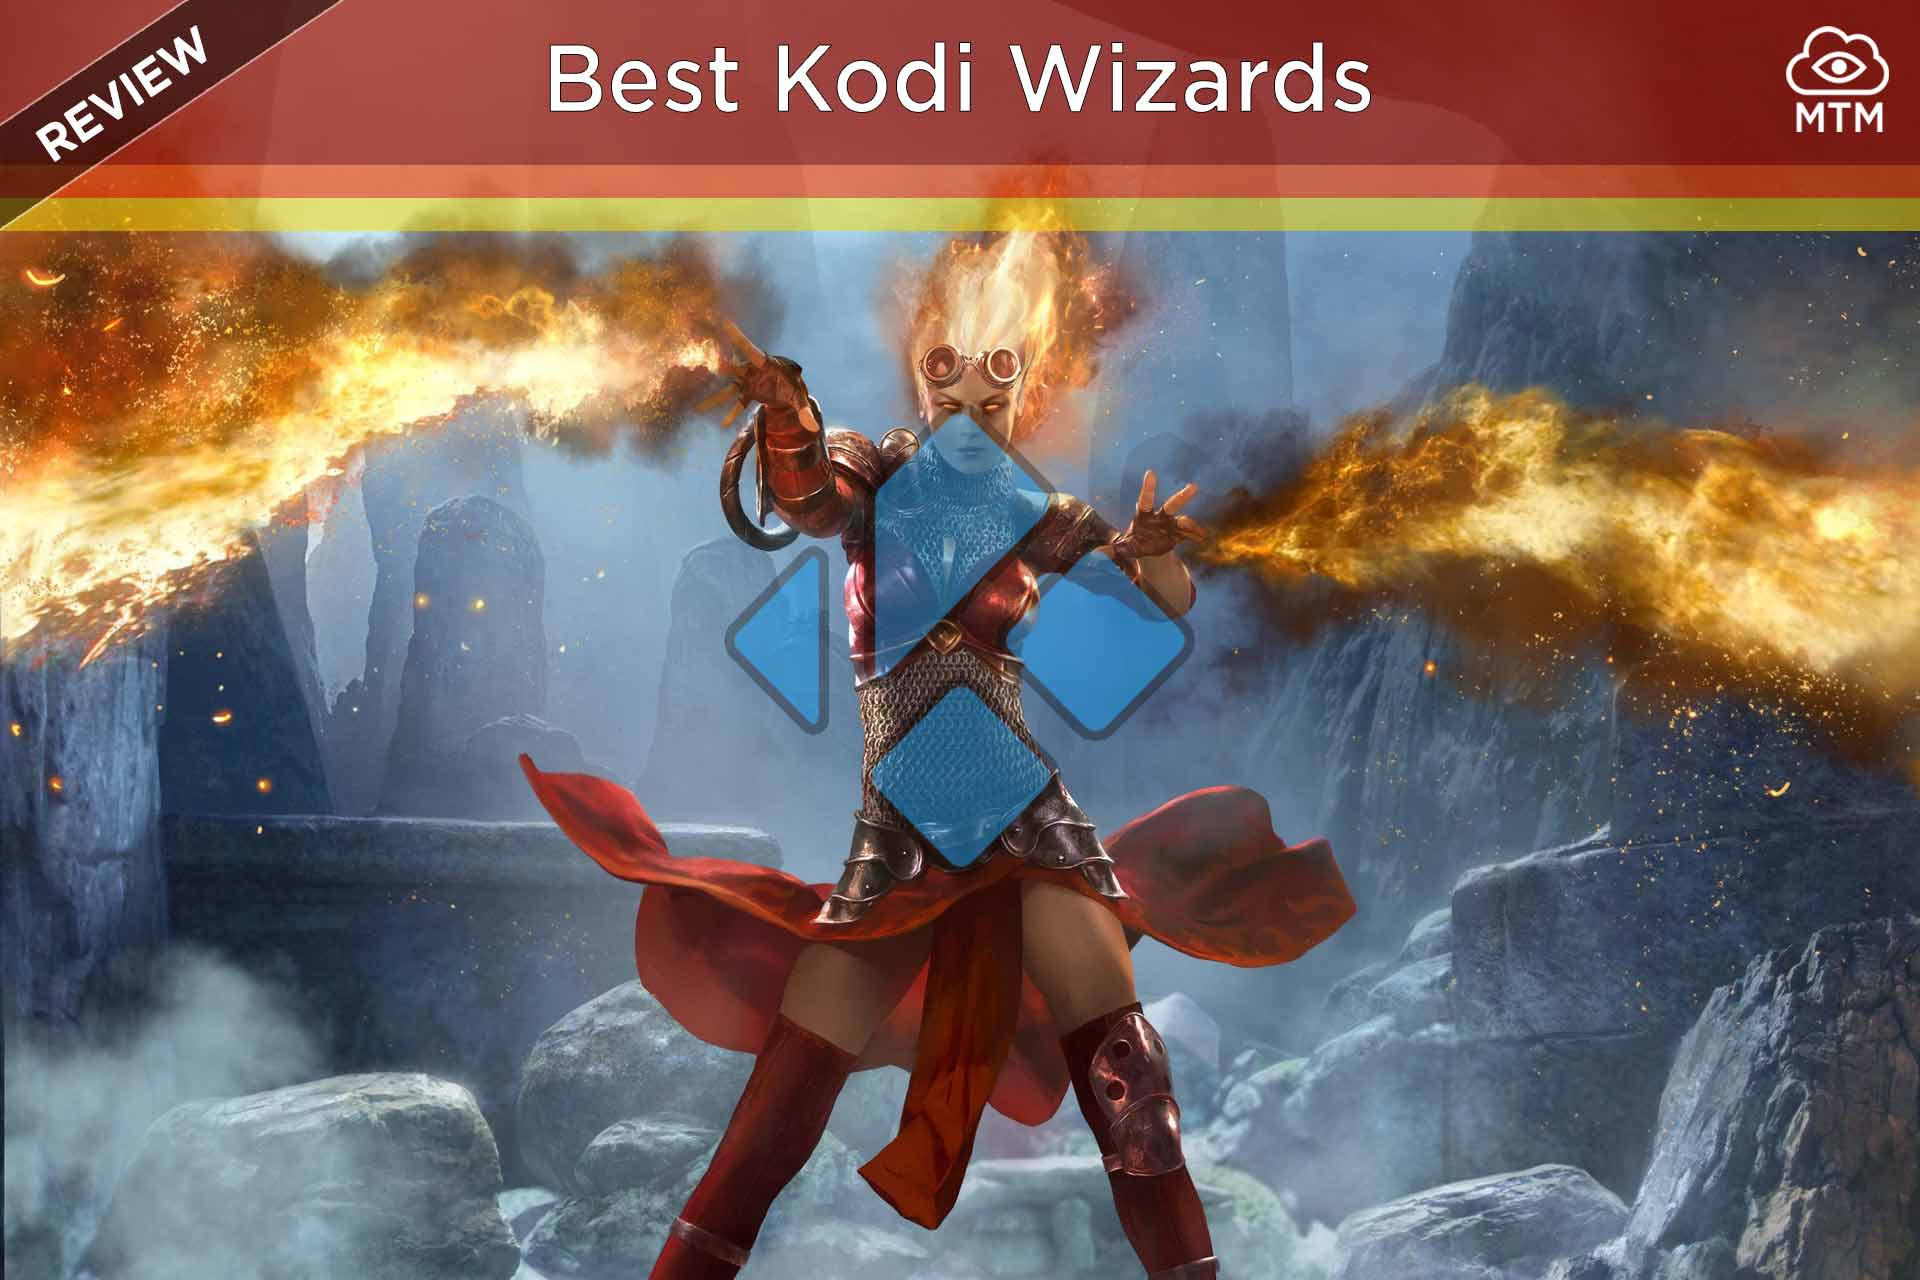 Best Kodi Wizards for Top Builds & Maintenance September 2018